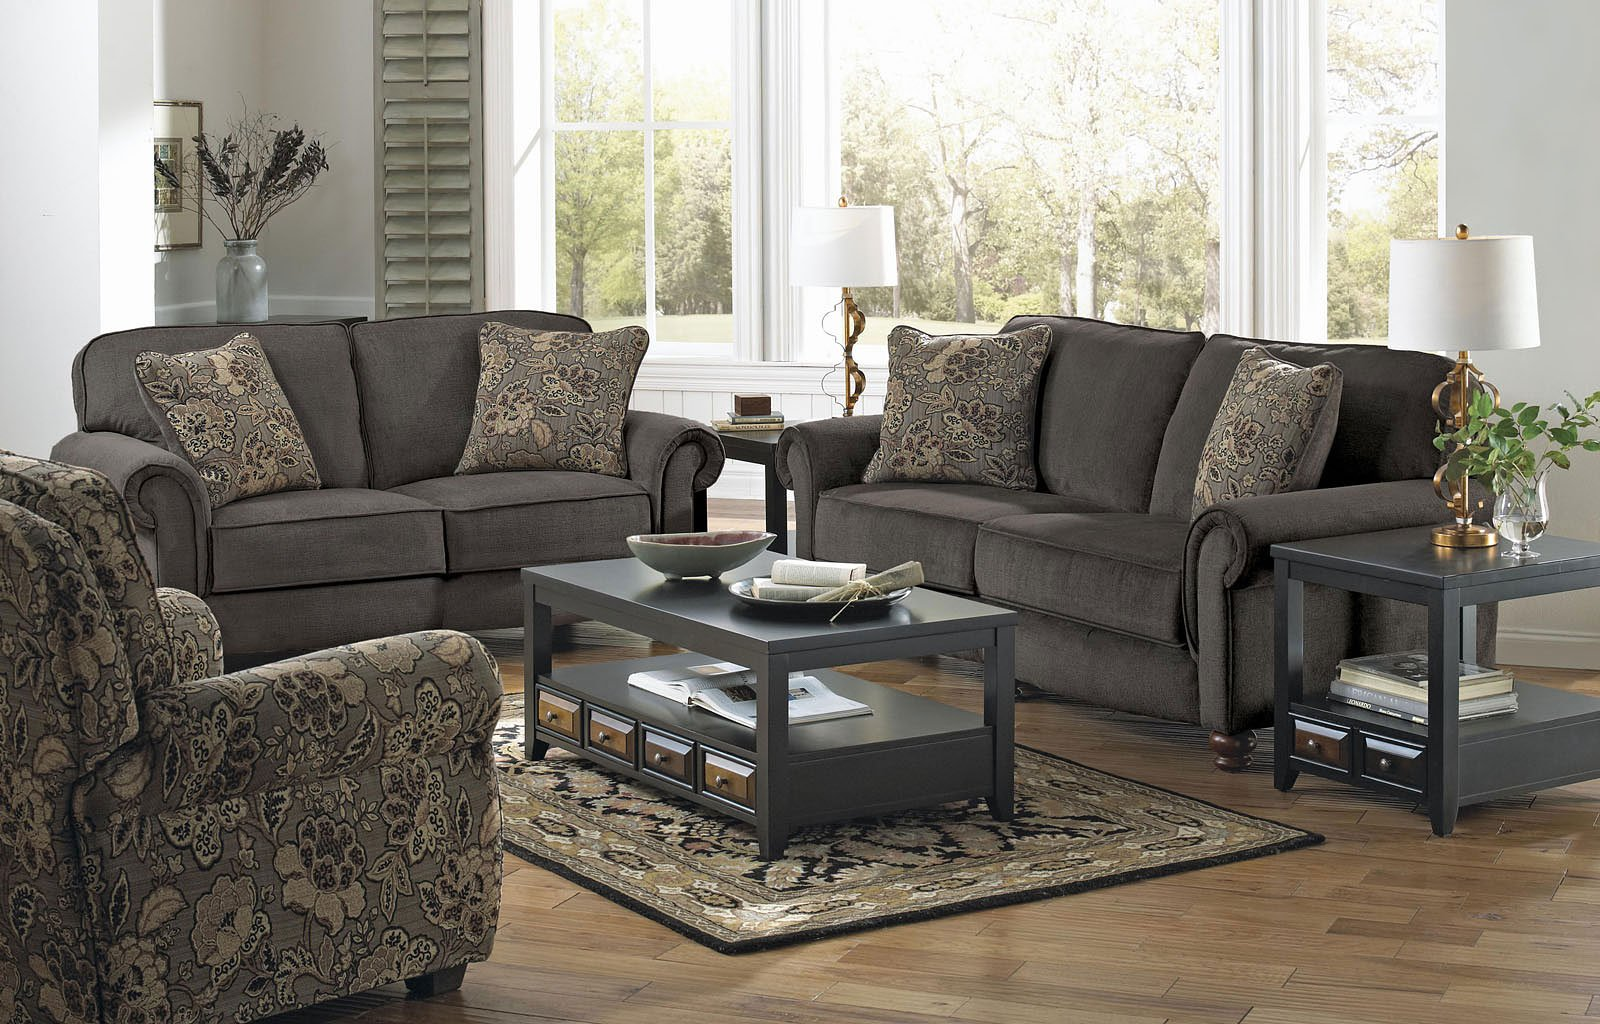 Downing Living Room Set Charcoal Jackson Furniture